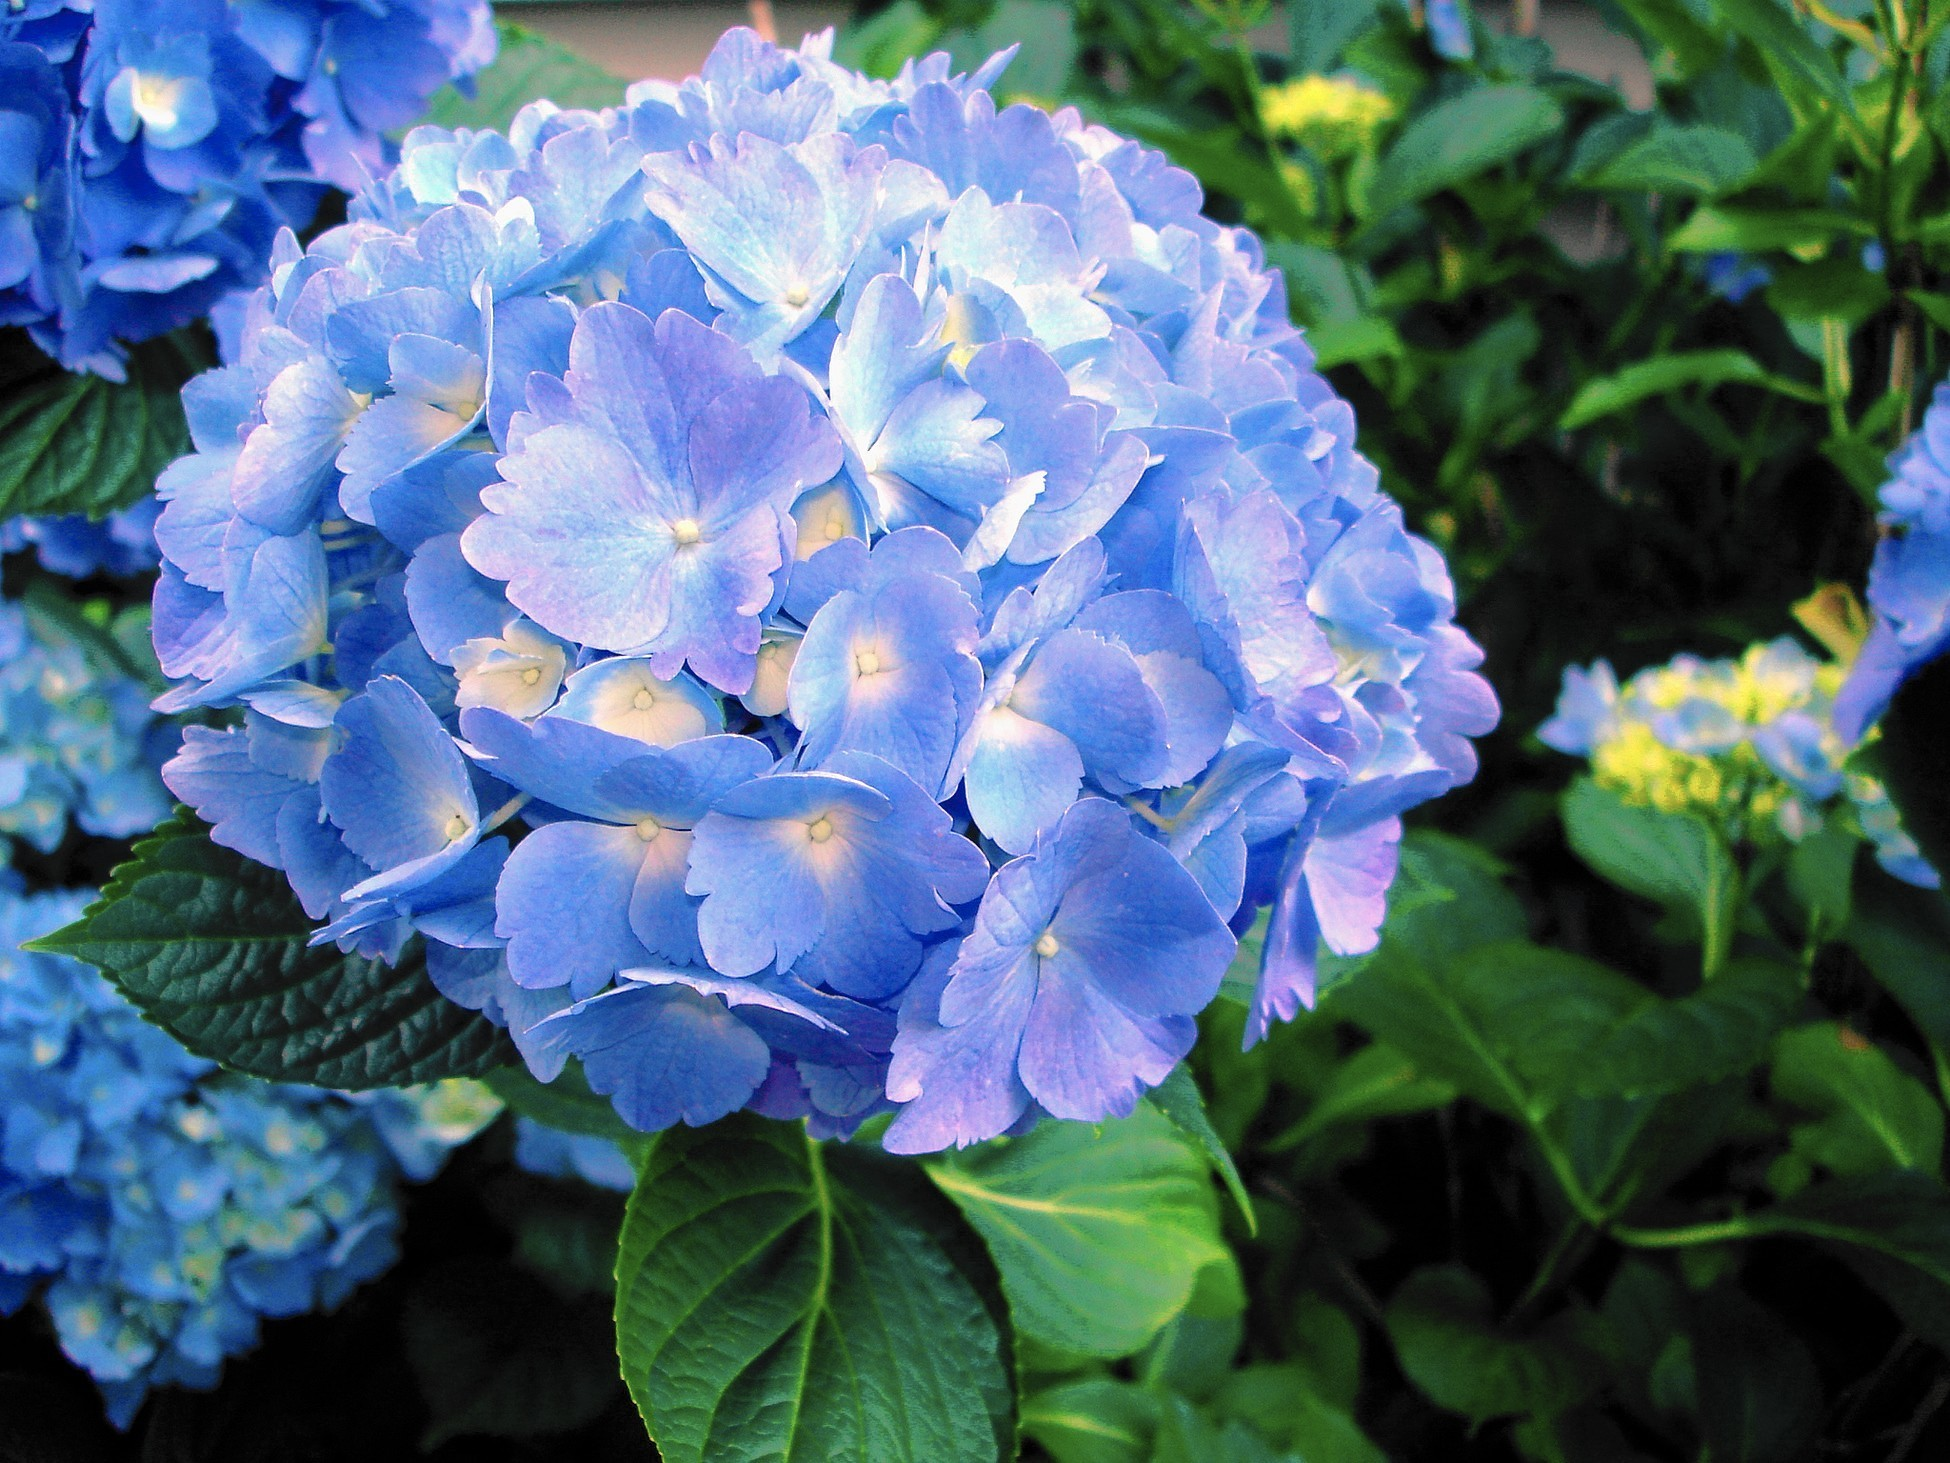 Garden Tips For Growing Hydrangeas In Pots The Morning Call